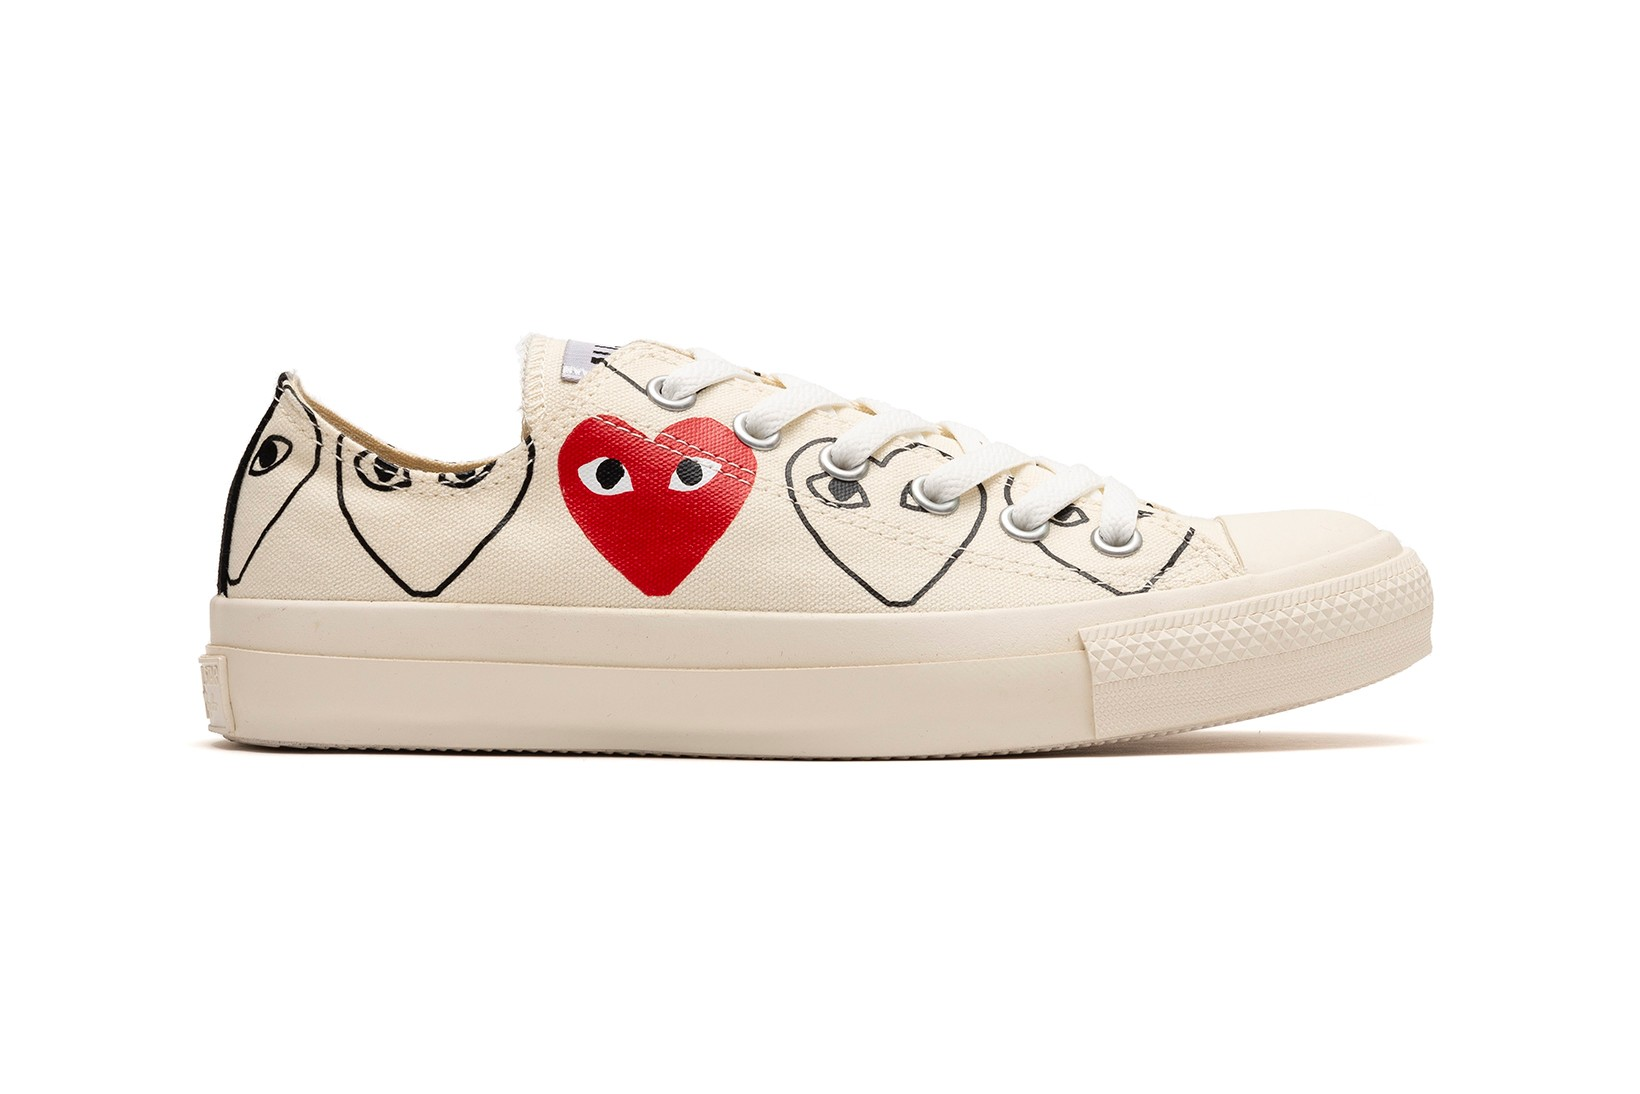 New COMME des GARCONS x Converse to